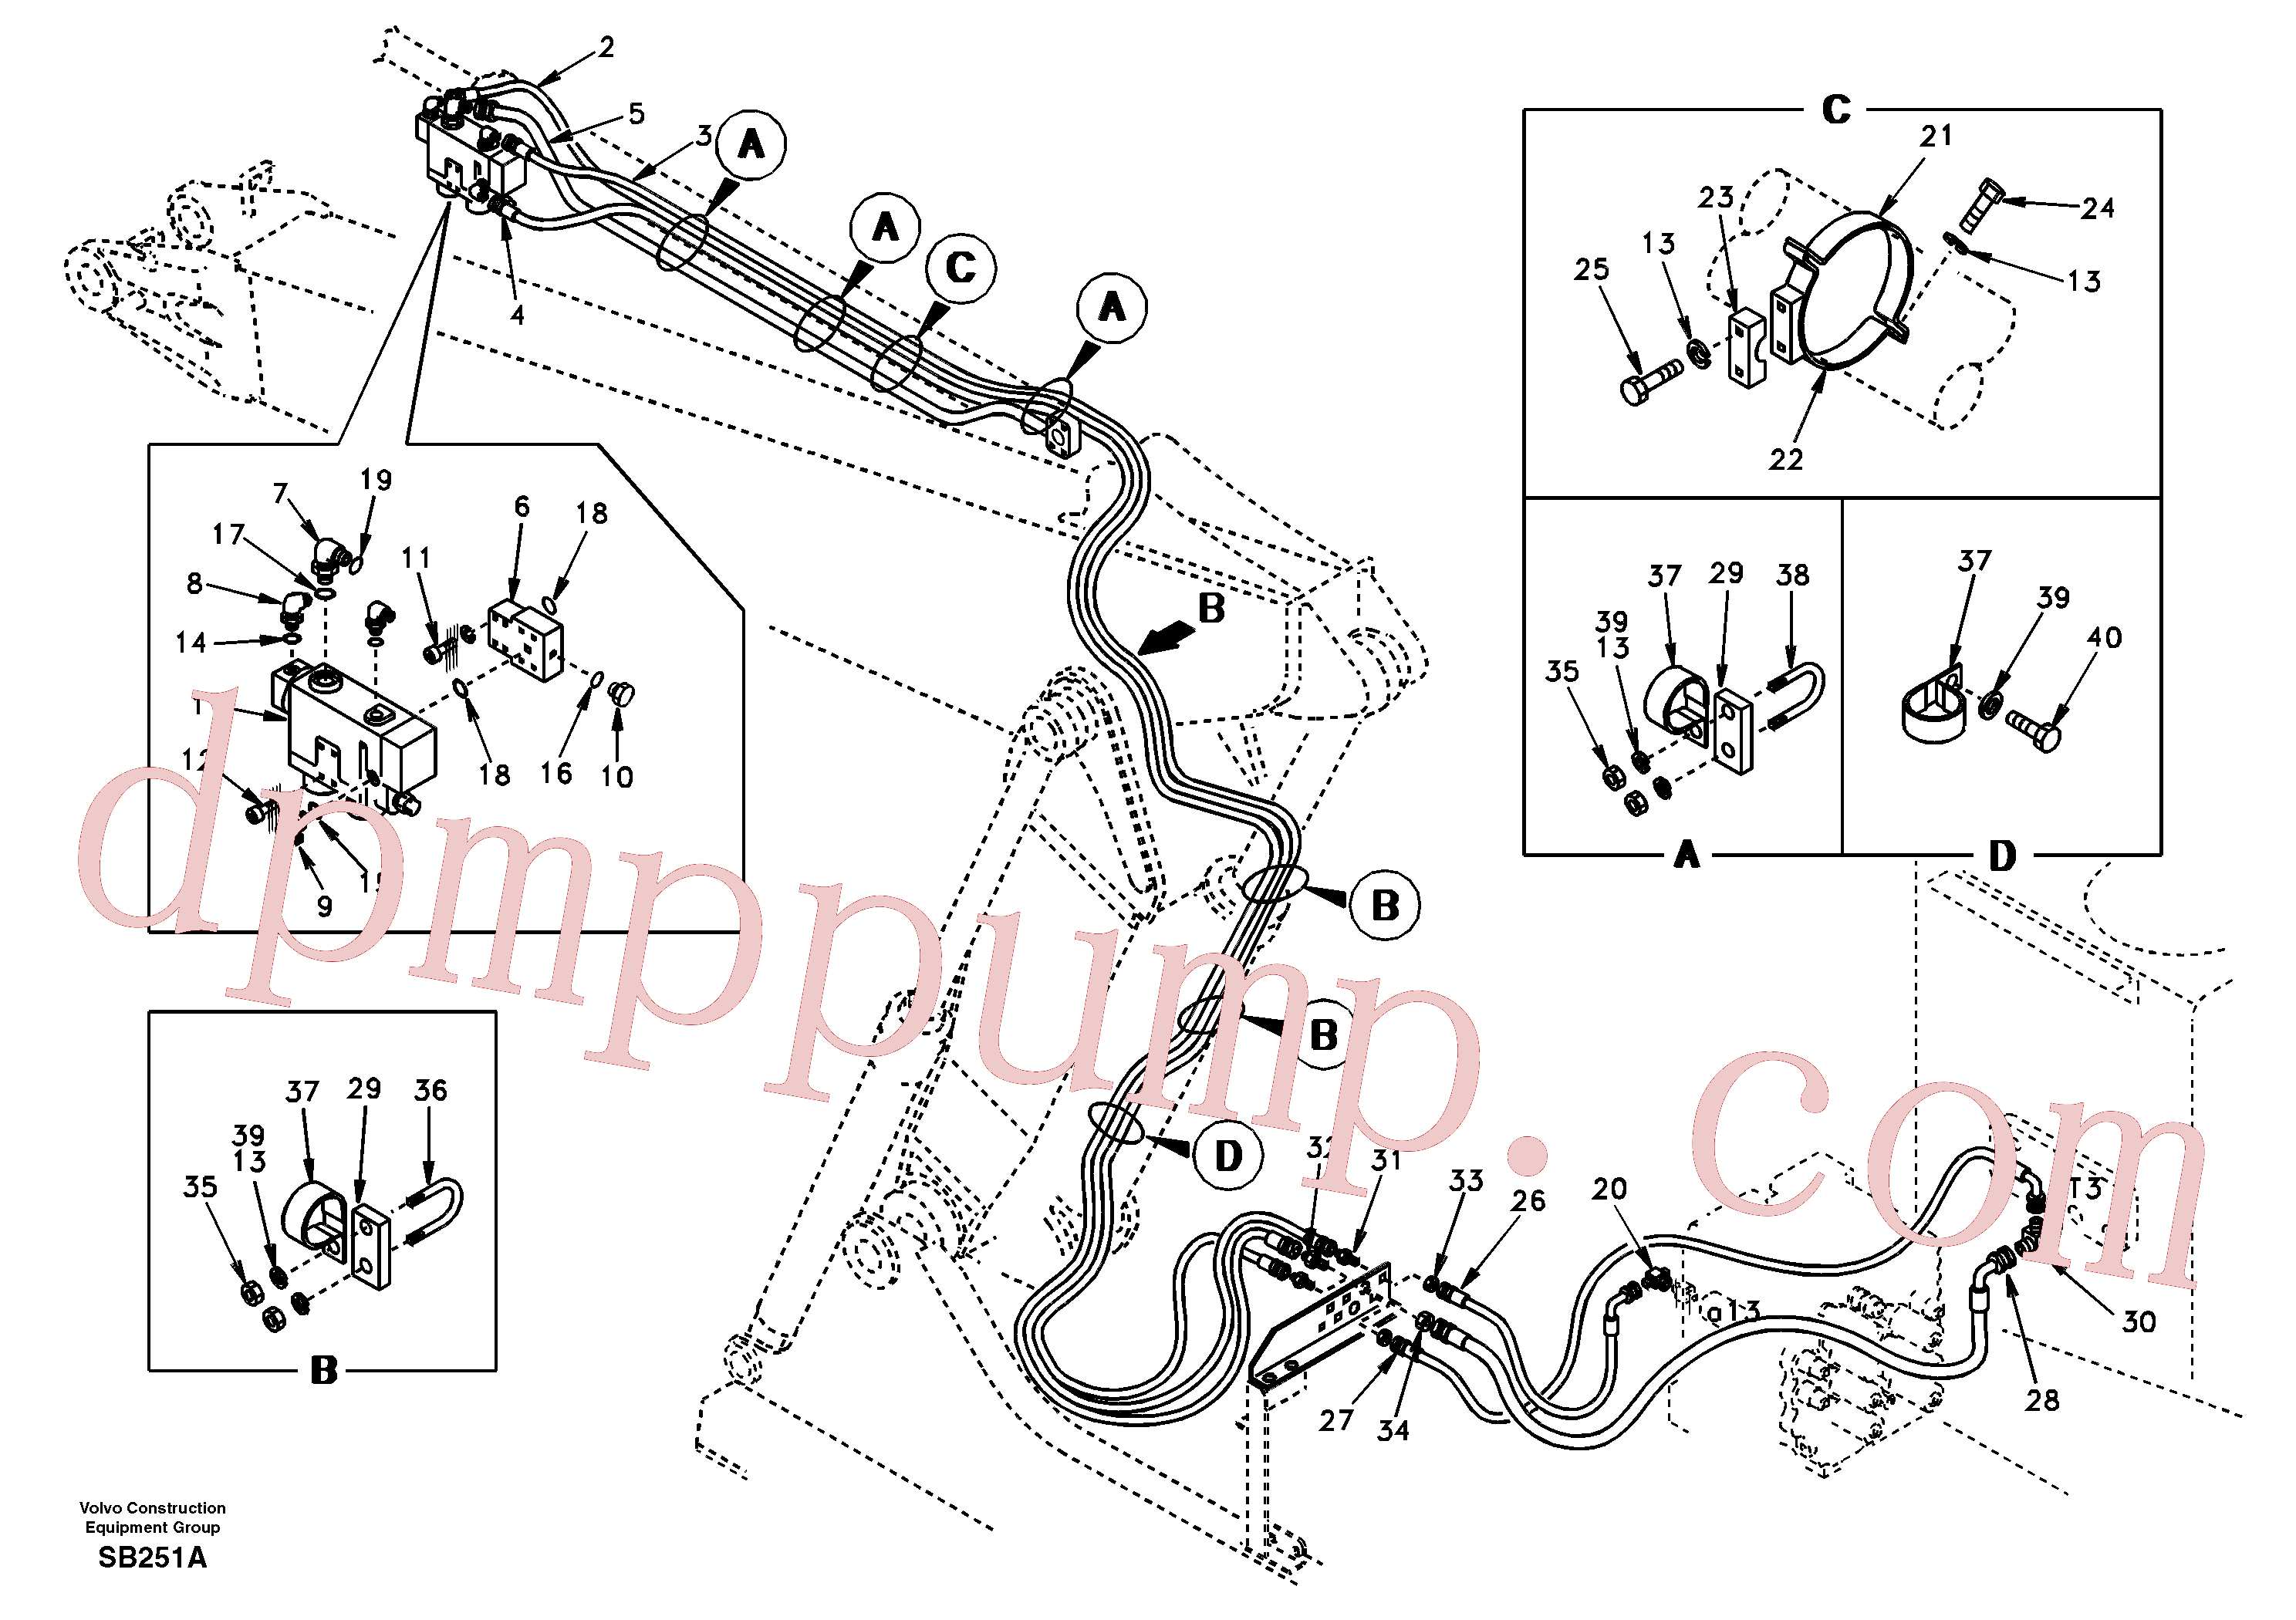 SA9466-03340 for Volvo Working hydraulic, dipper arm rupture and adjustable boom(SB251A assembly)